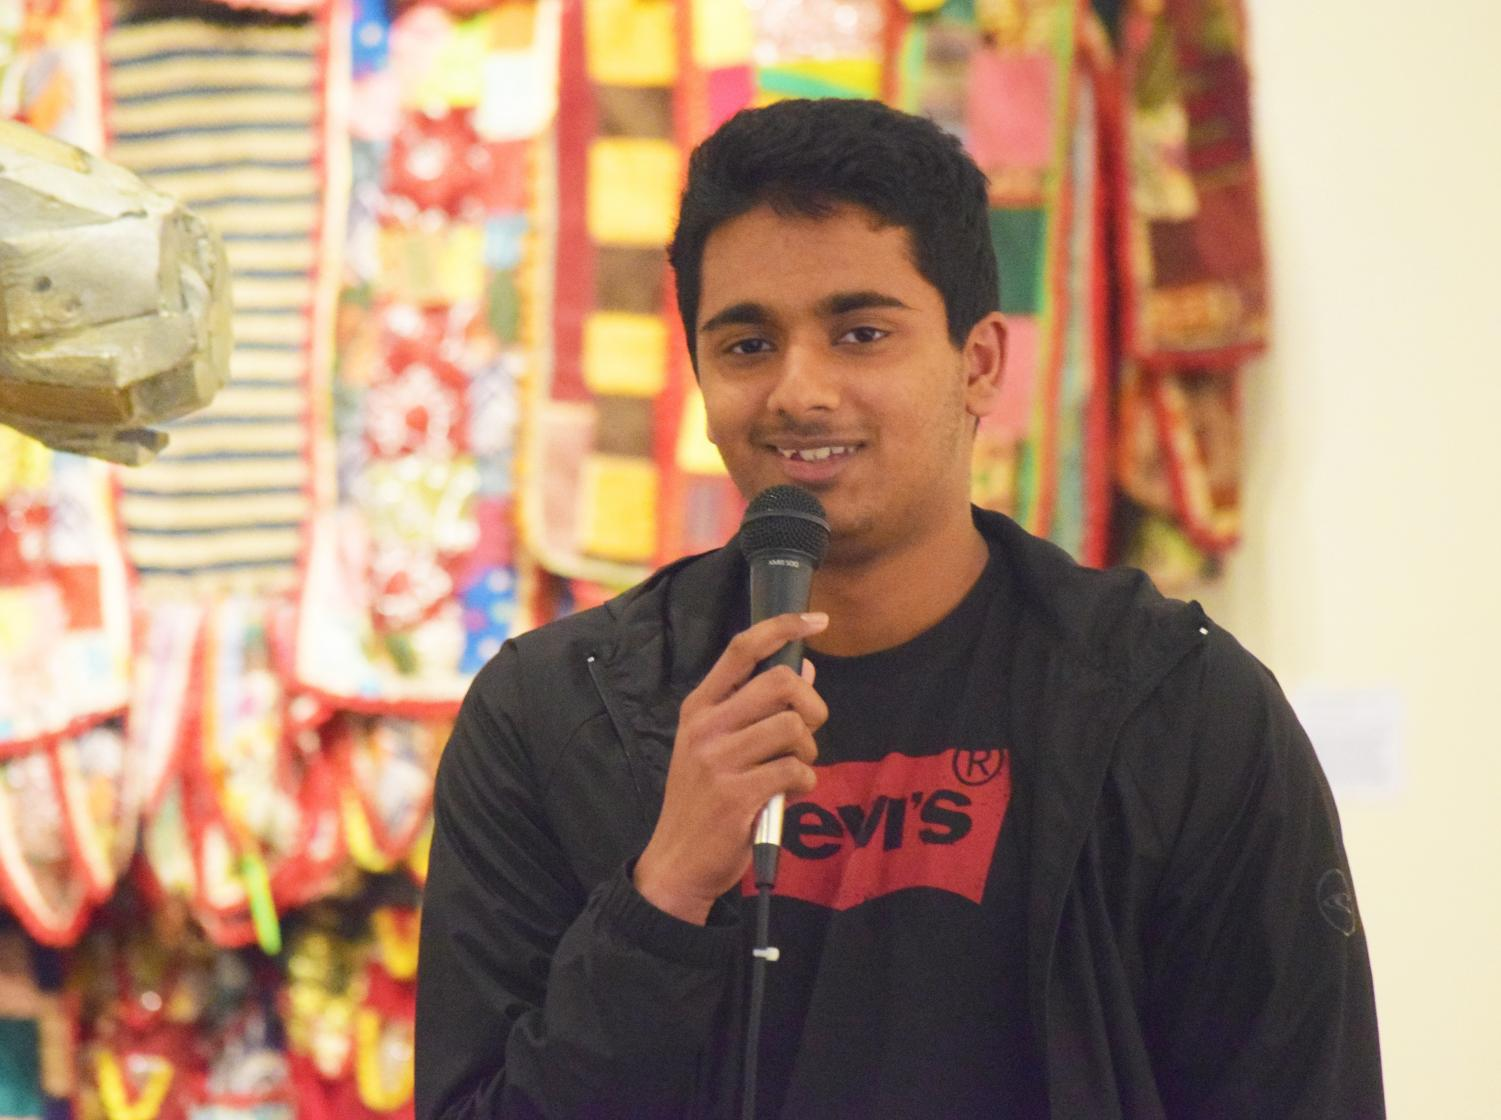 Numaan+Shaikh%2C+18%2C+political+science+major%2C+performs+standup+comedy+about+his+life+experiences+at+First+Thursday%27s+Open+Mic+night%2C+Mar.+7+at+the+Euphrat+Museum.